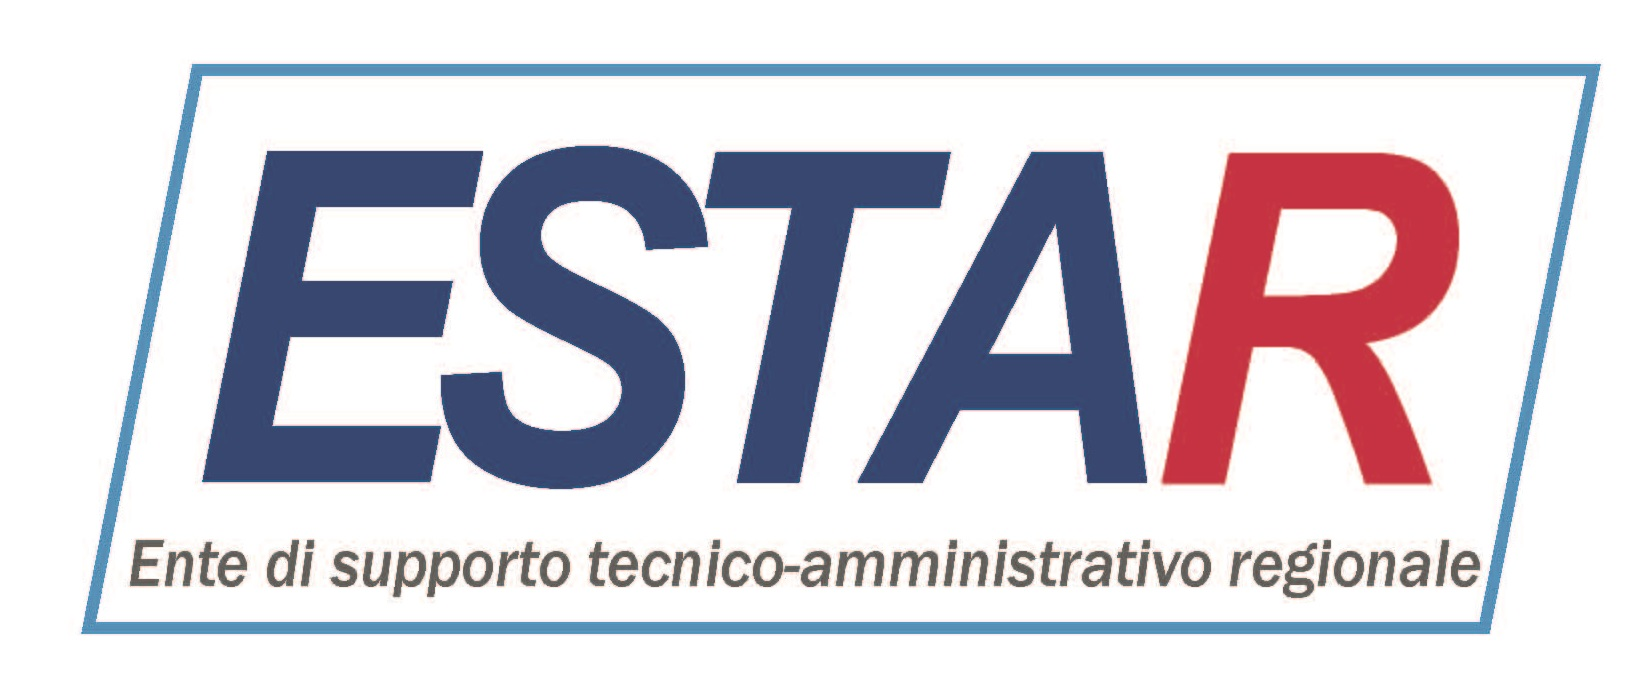 UIL TOSCANA » 2015 » Settembre